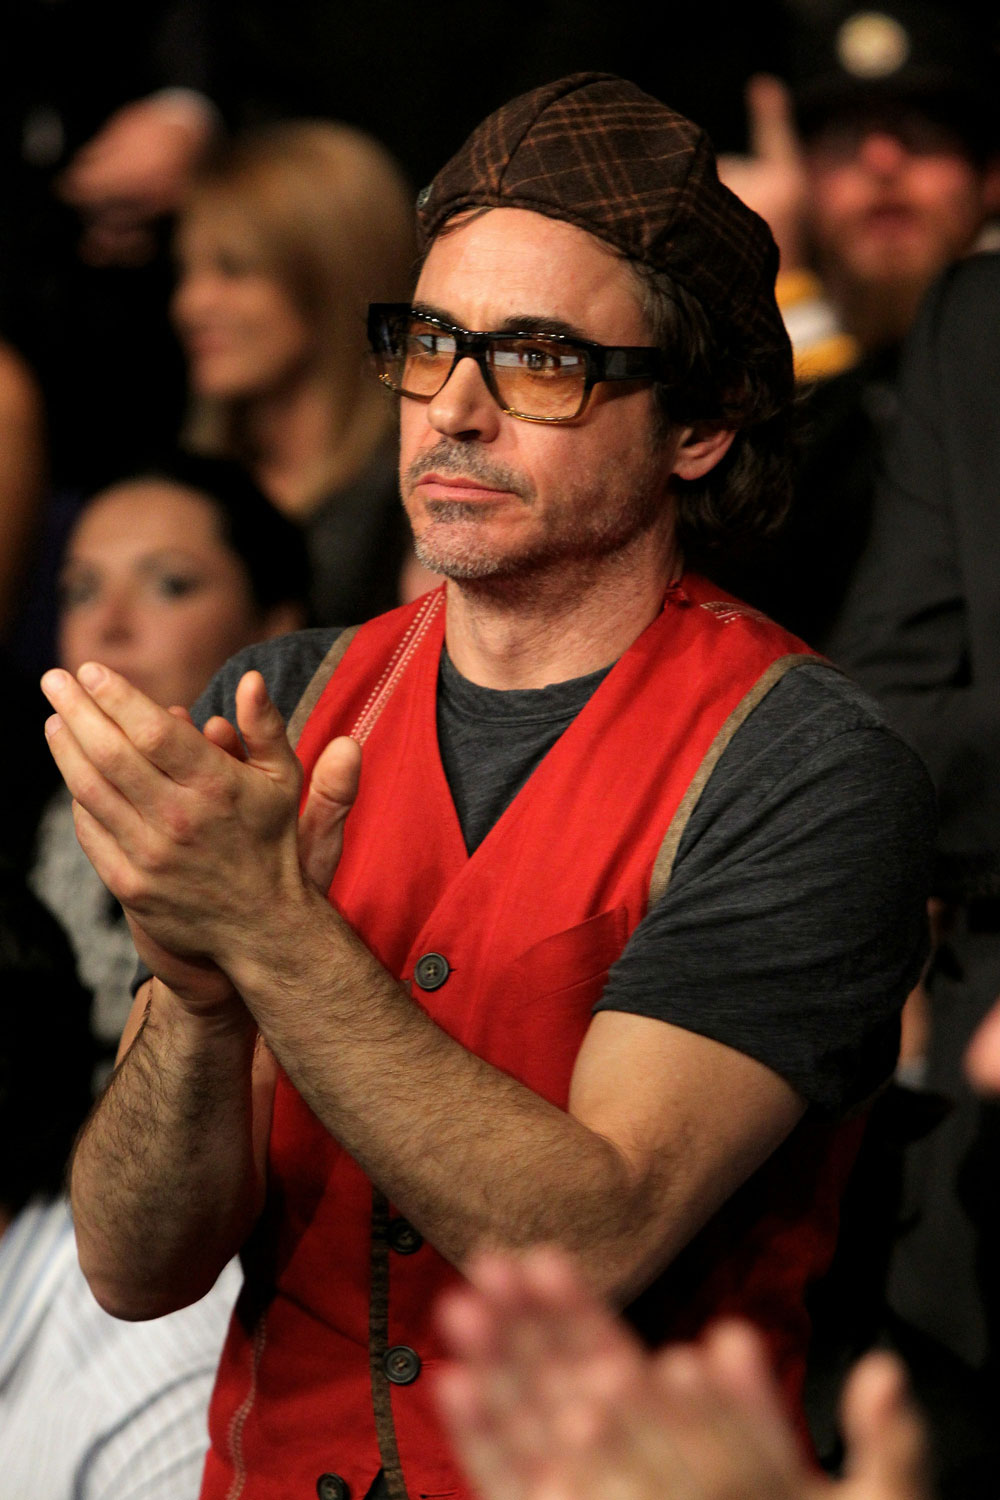 UFC 120: Robert Downey Jr. watches the main event.